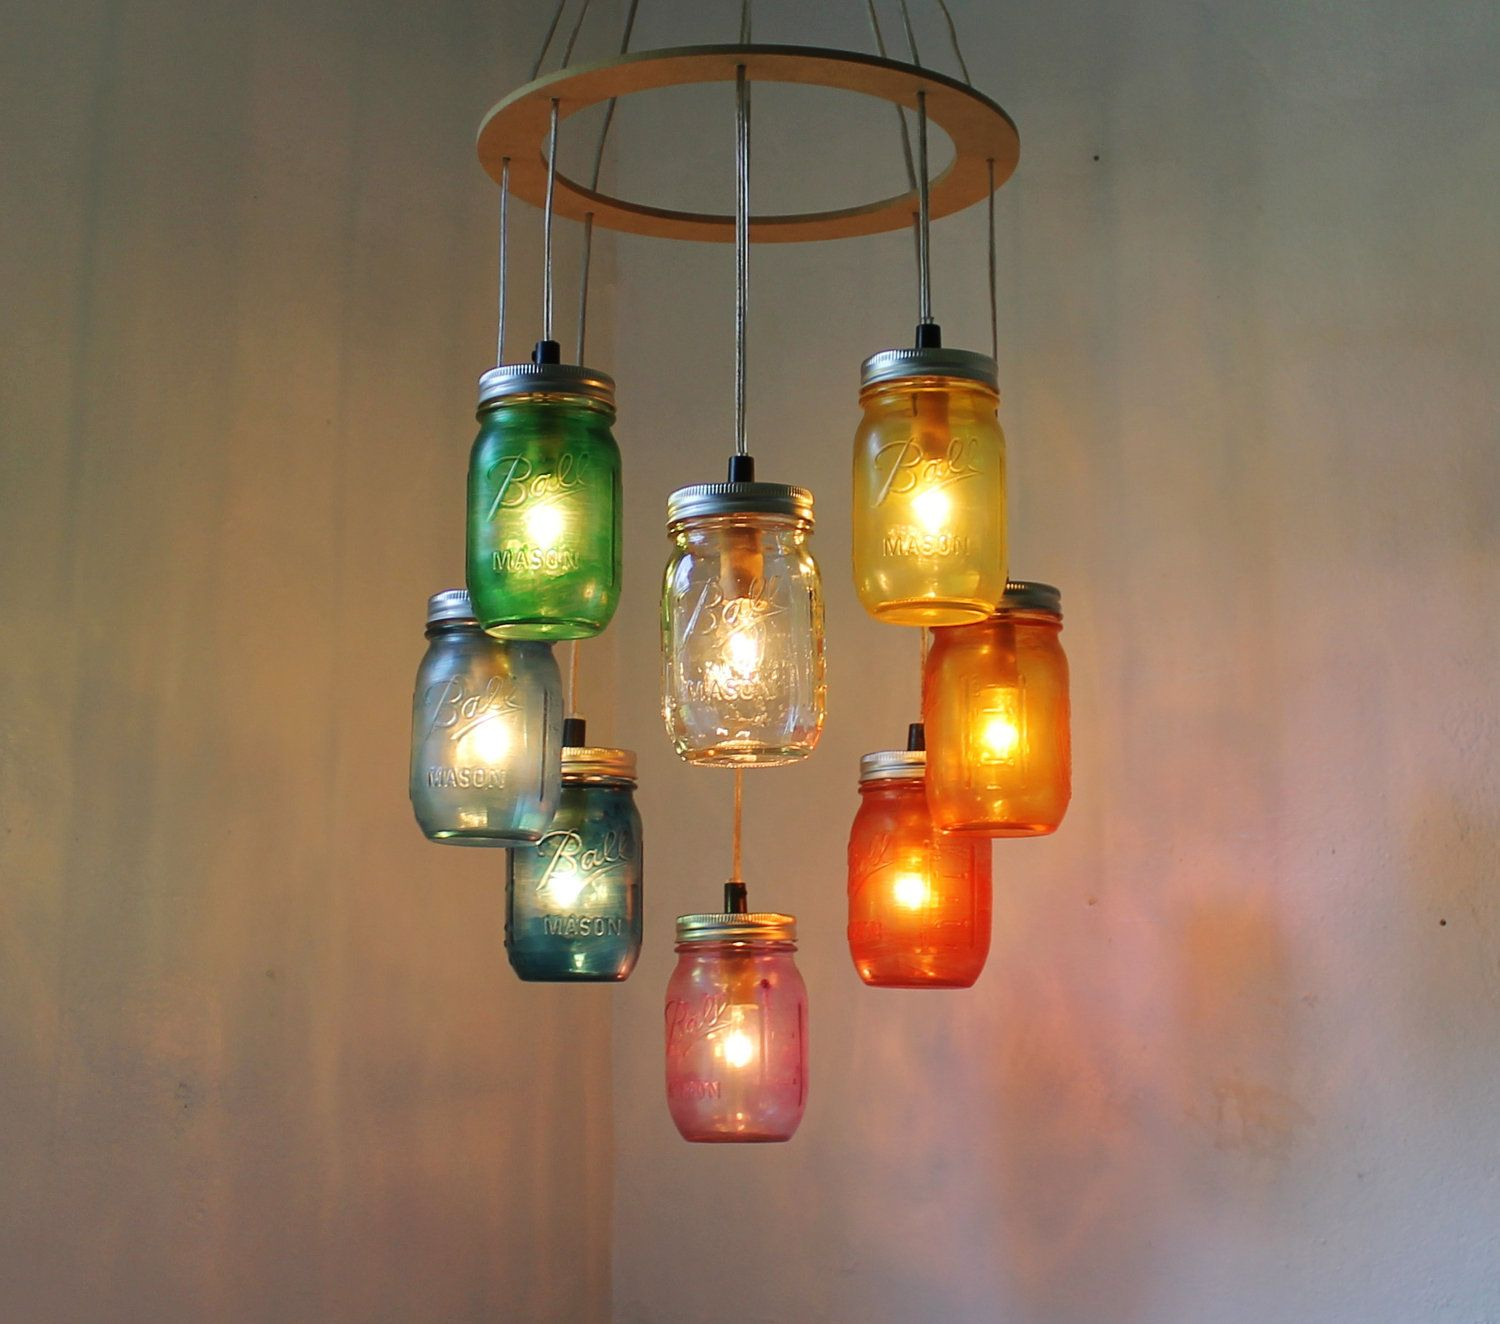 Rainbow heart shaped mason jar chandelier light rustic hanging rainbow heart shaped mason jar chandelier light rustic hanging pendant lighting fixture direct hardwire arubaitofo Gallery